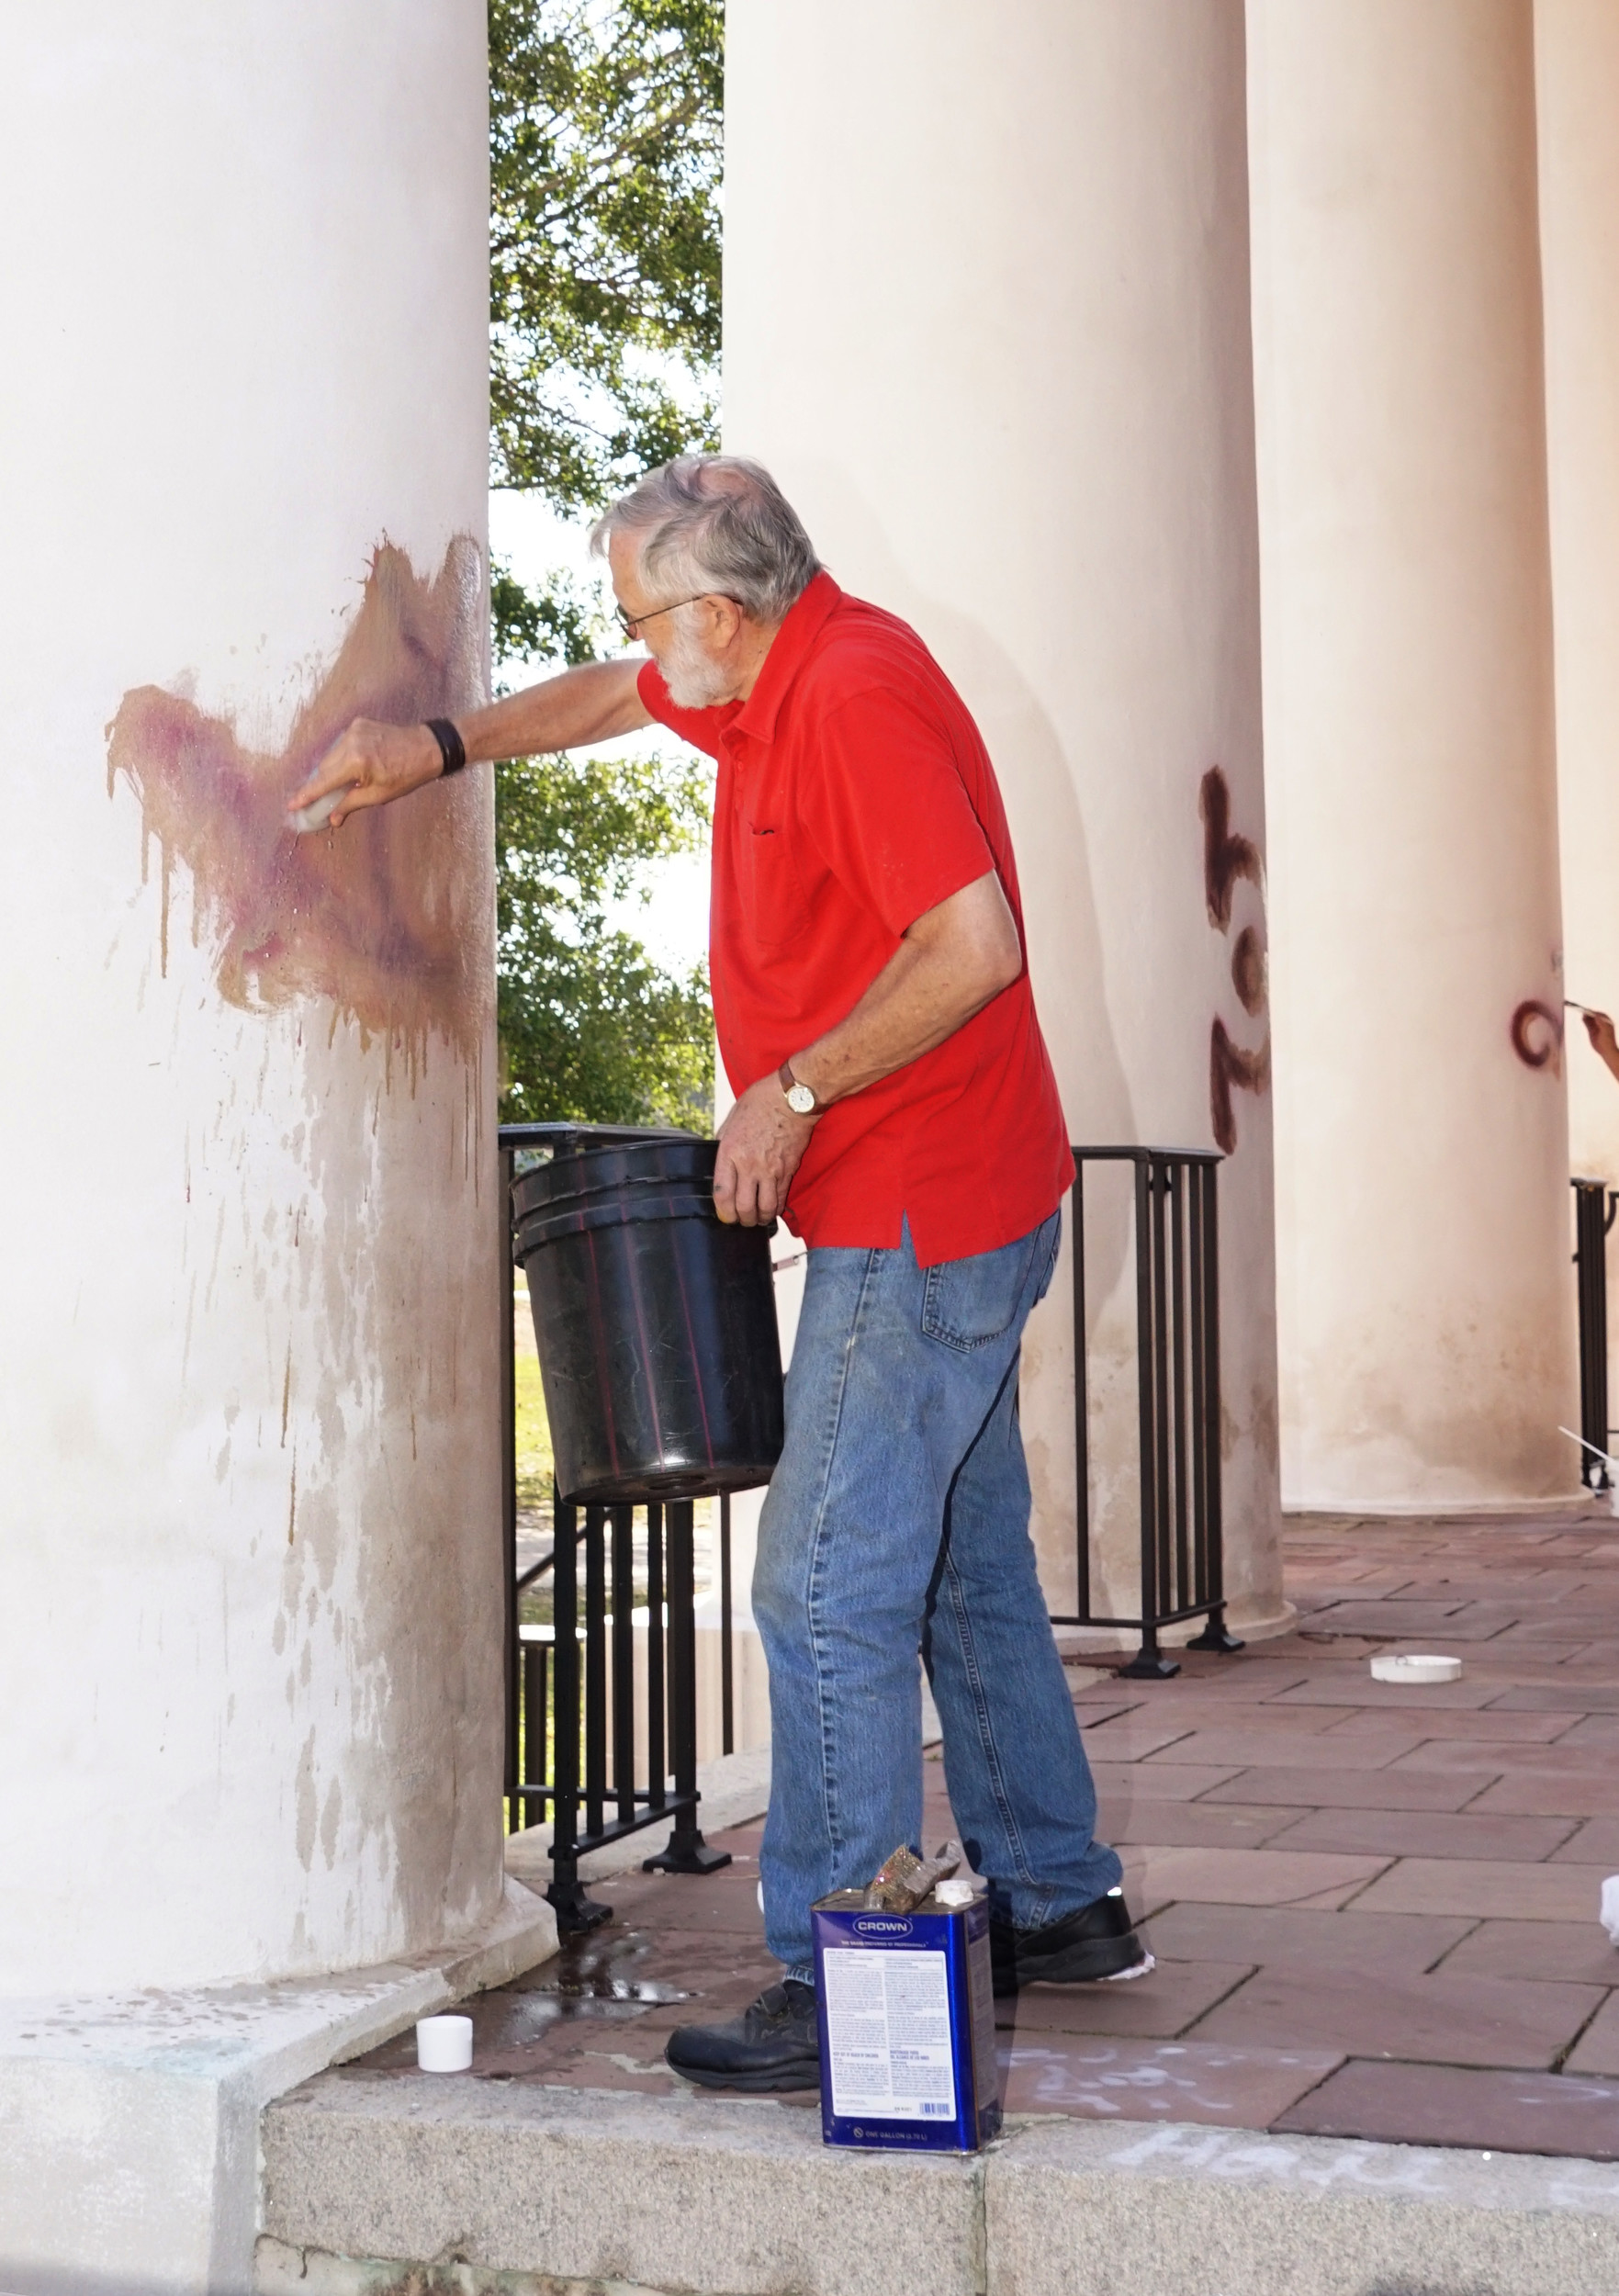 Slem Black River Presbyterian Church member Dick Dabbs cleans paint off a column at the church Friday after vandals painted satanic and other symbols on the church some time the previous night.